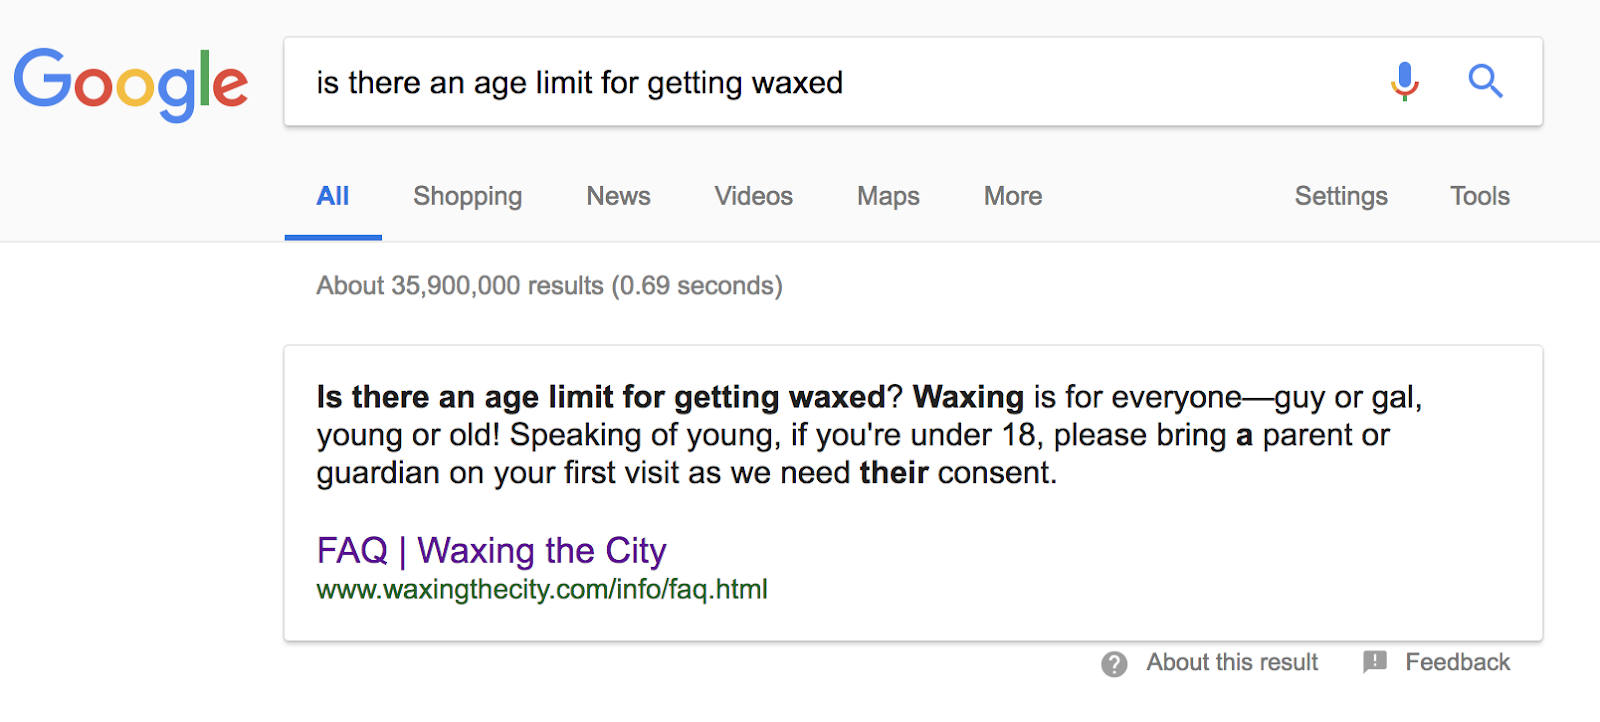 Waxing in the City FAQ Page - Featured Snippet